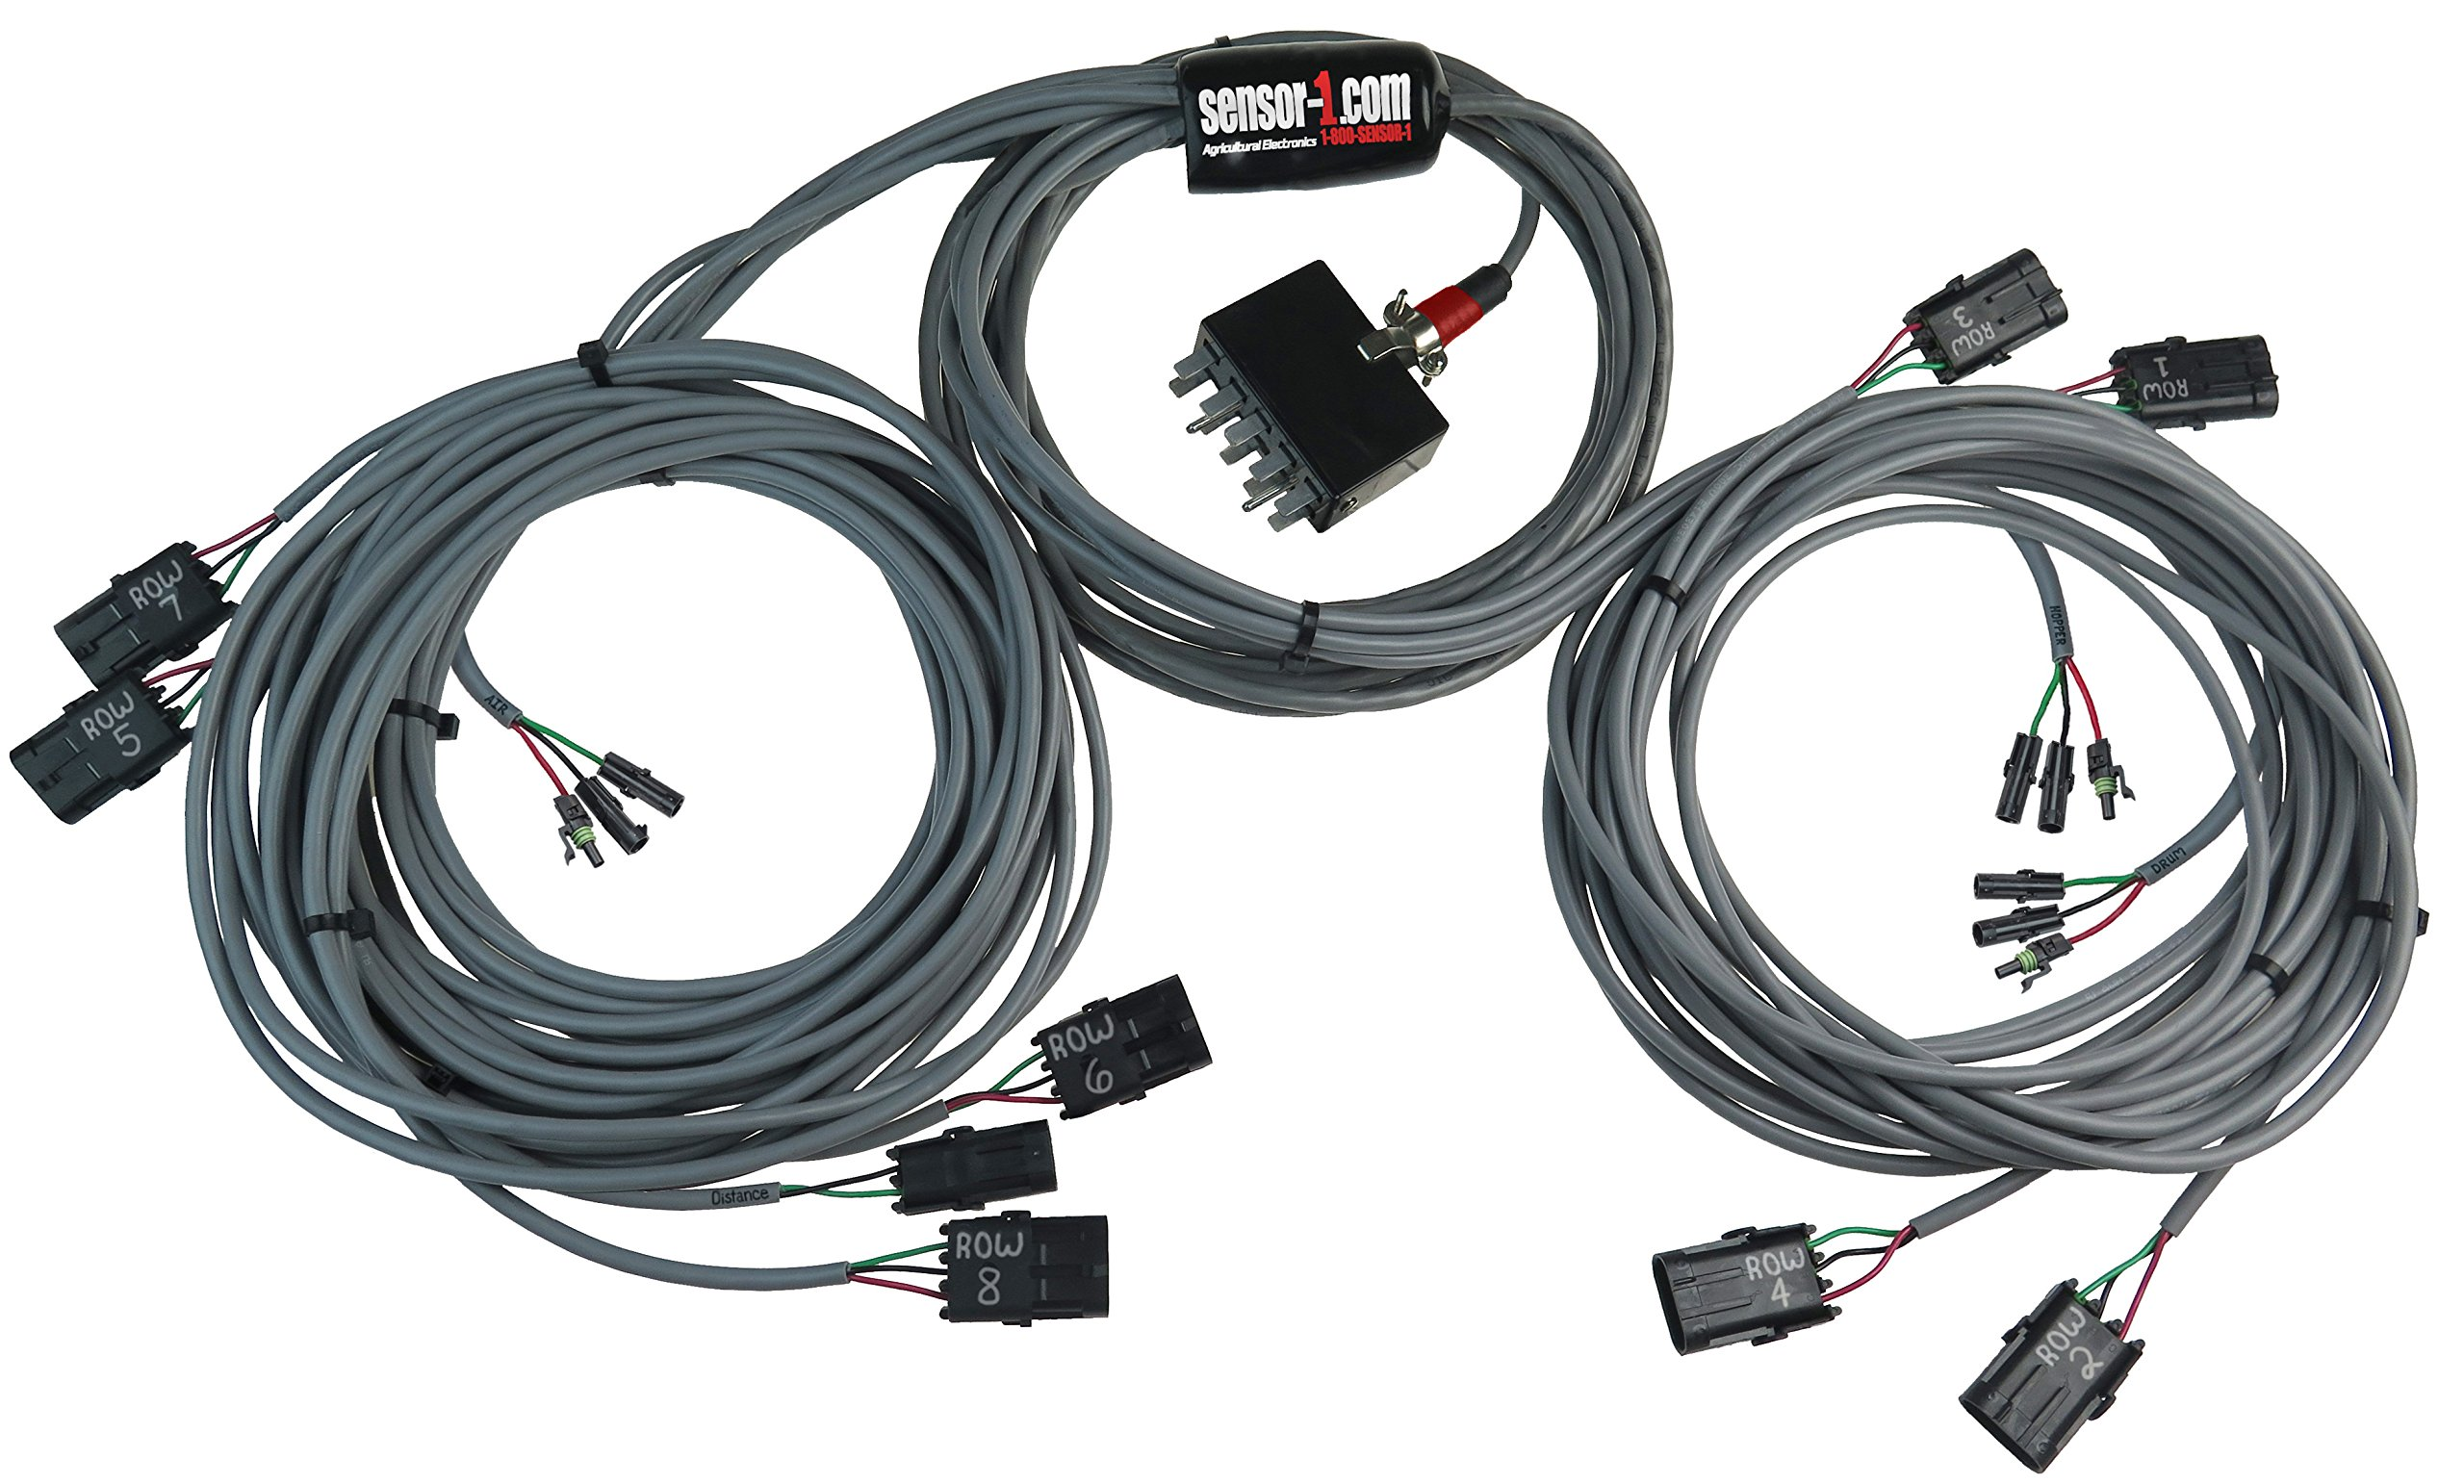 Sensor-1 HPCWP08 8-Row Harness for Performance Center Monitor with Weather Pack Connectors